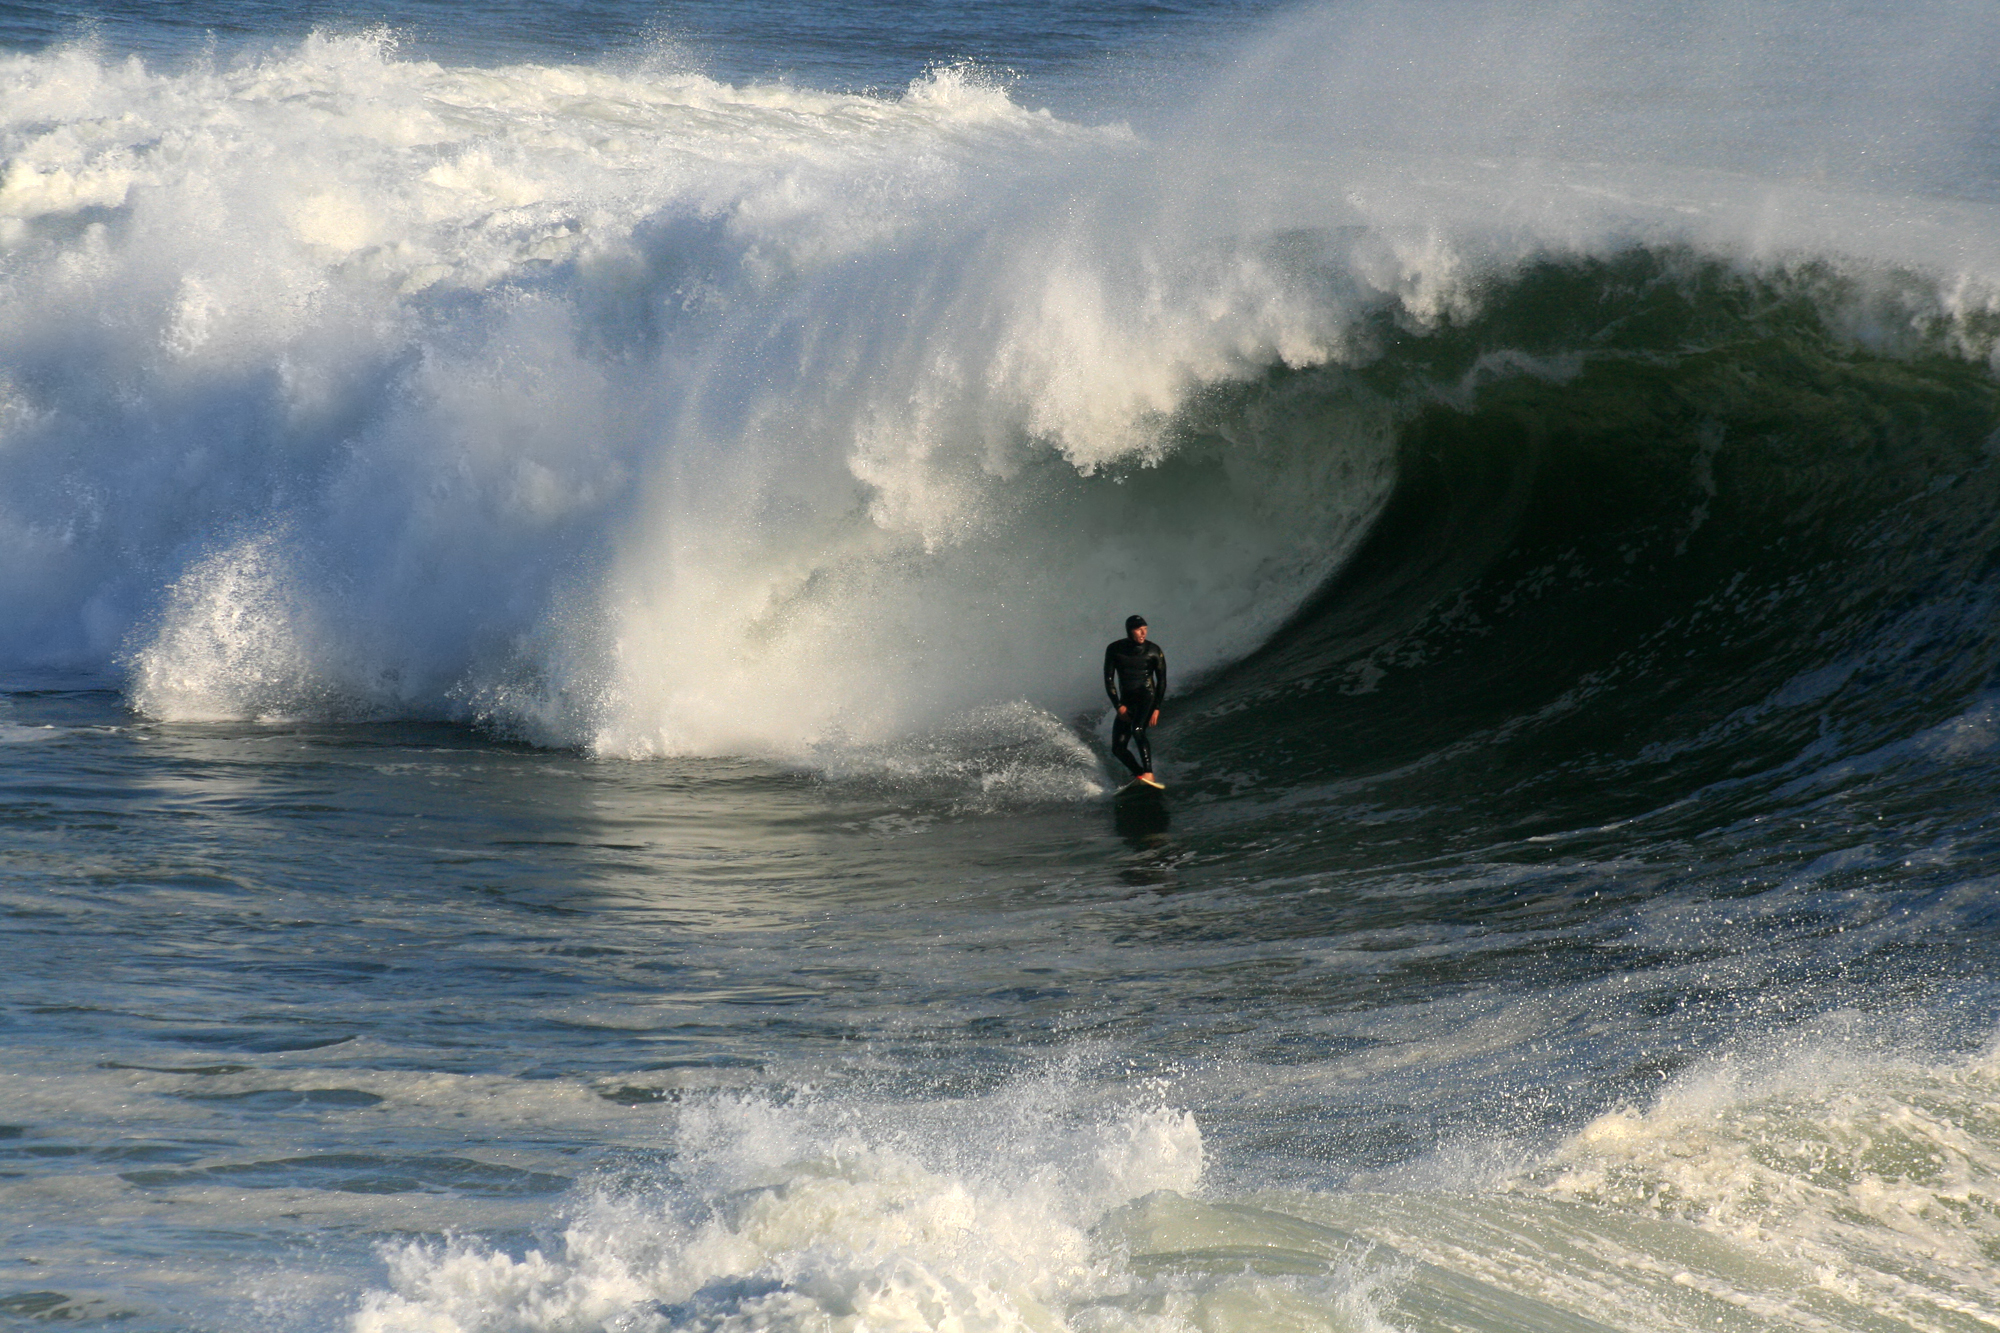 Photo of surfer at bottom of wave, attempting to let tube envelop him